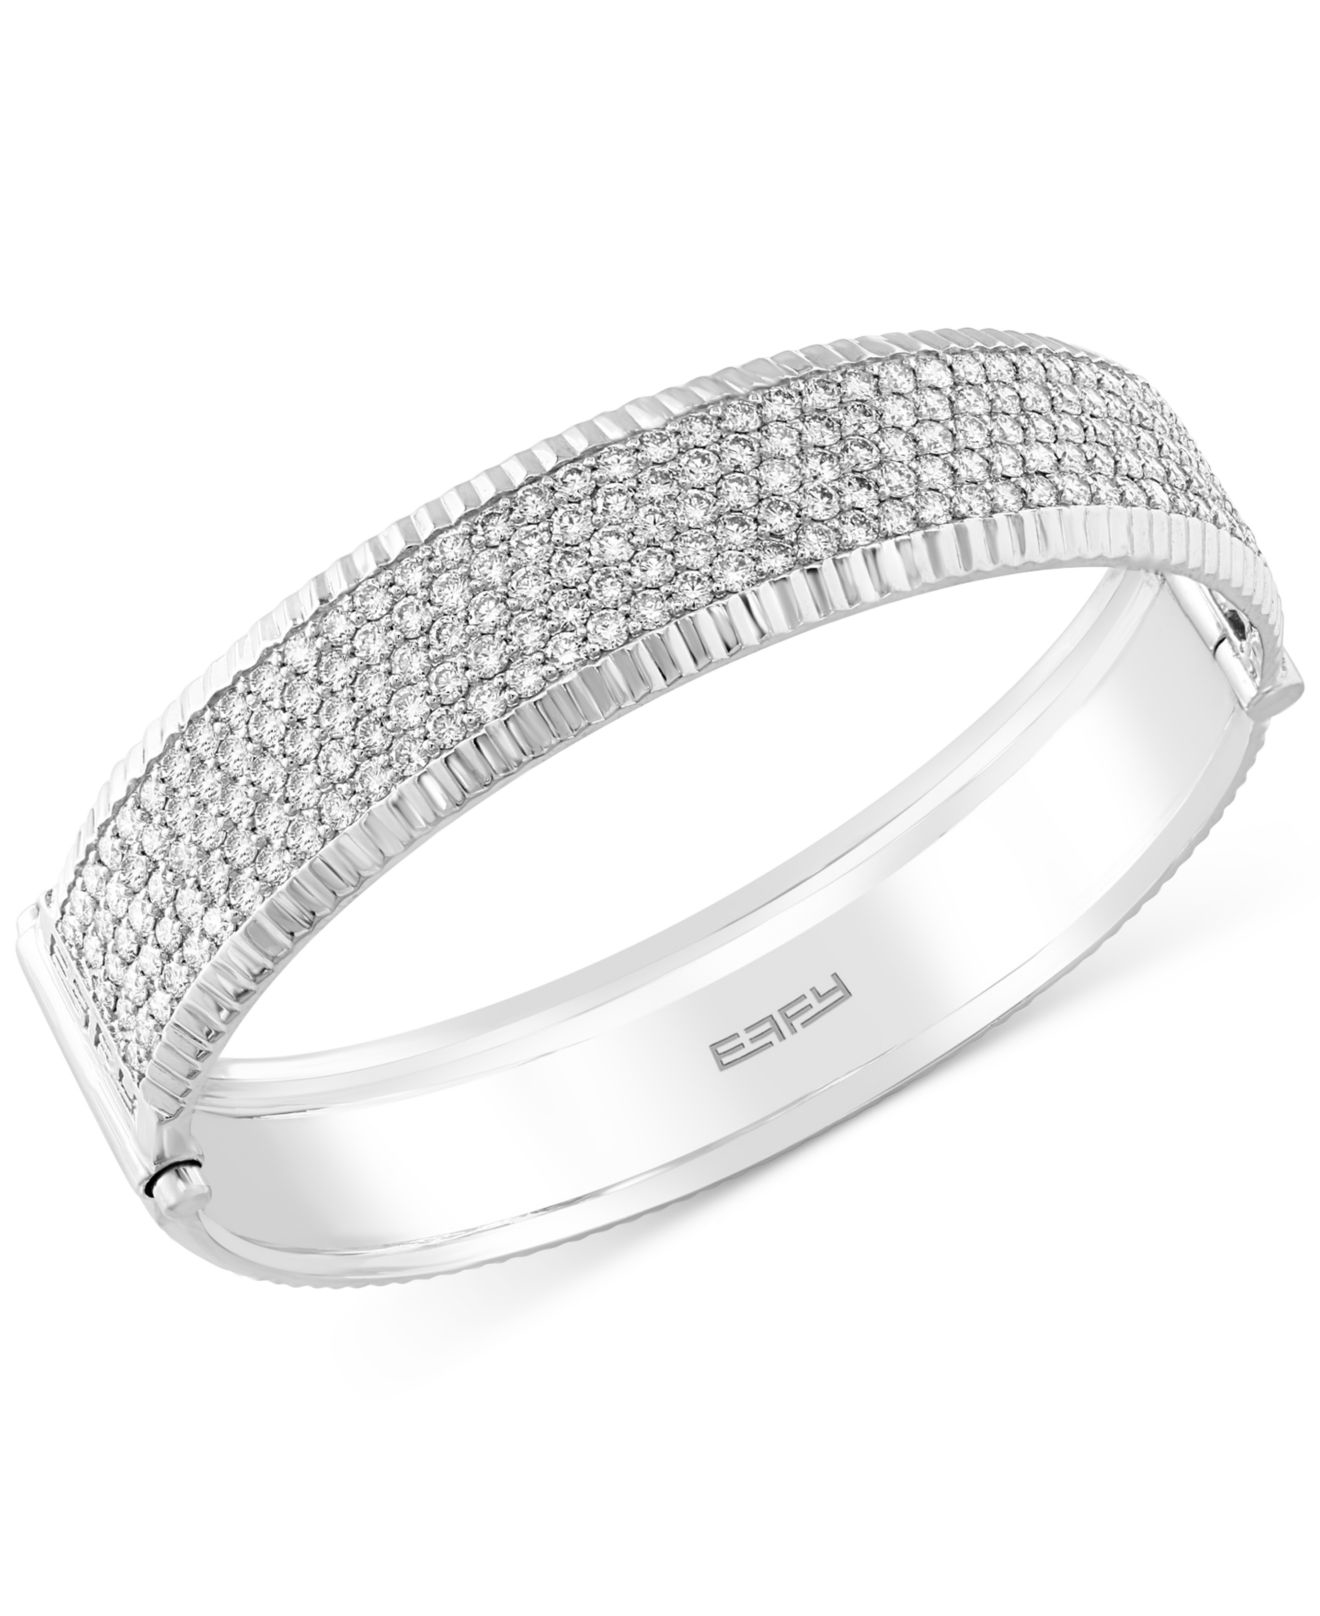 diamond ethos product bracelet gold pav bangle canada bangles white pave stackable